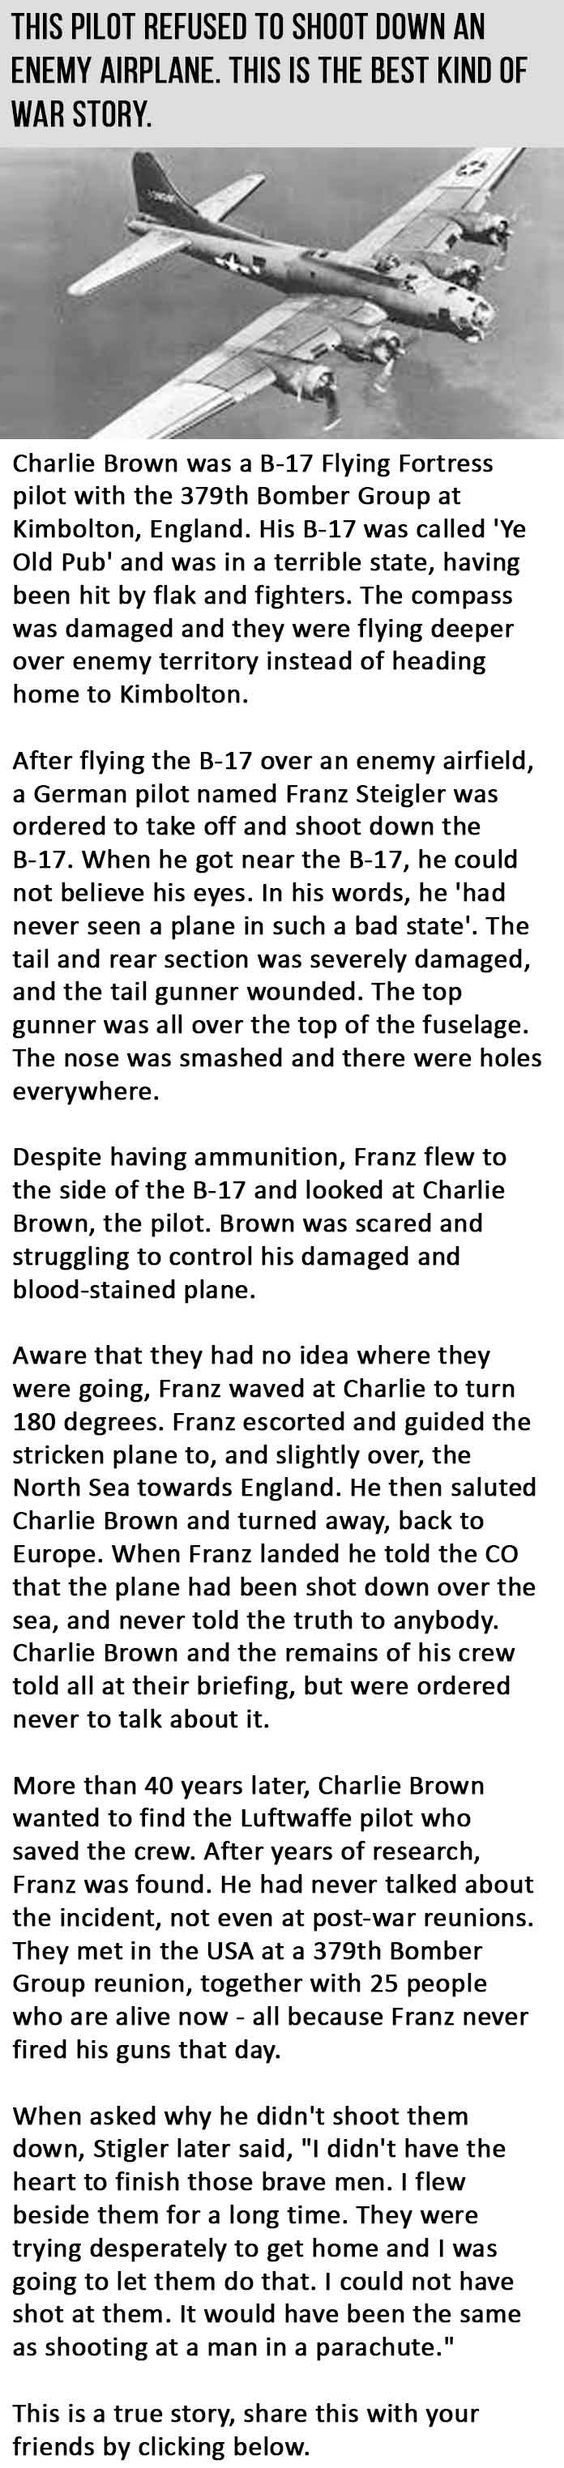 This true war story about one German pilot's willingness to stay his hand instead of firing his weapon kept another pilot alive to tell the most amazing tale.